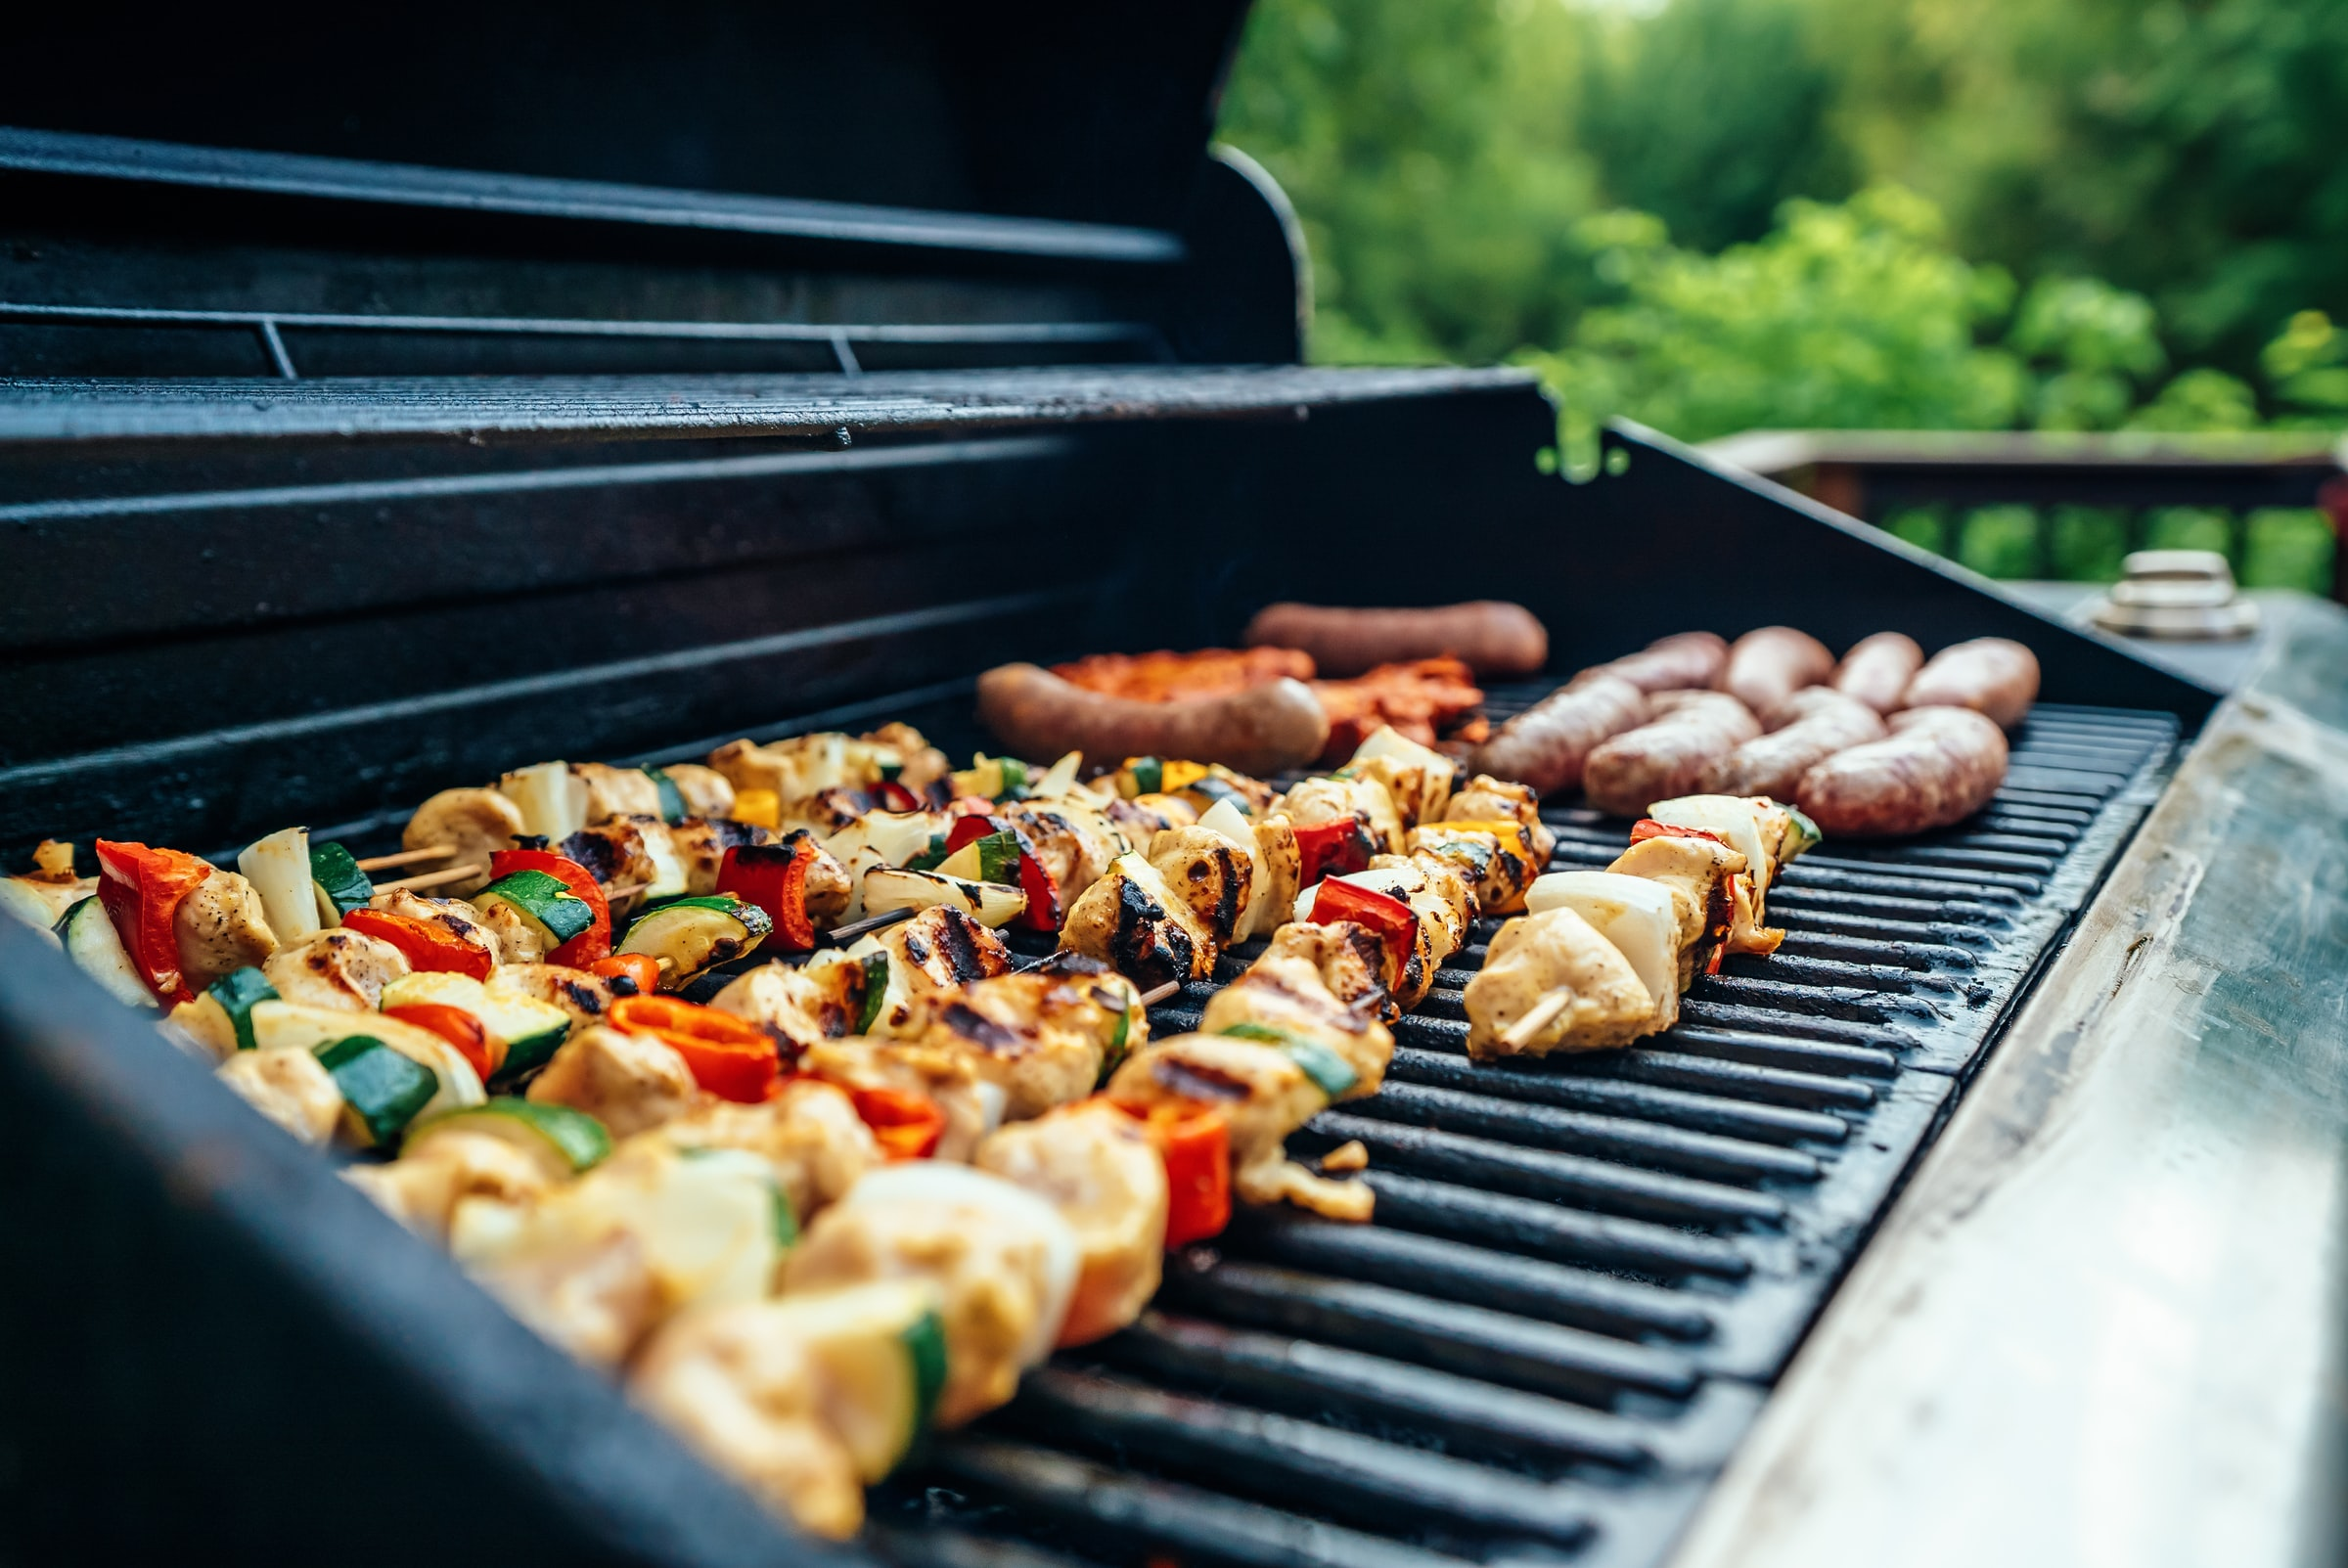 Why buy a Beefeater over other barbecues?